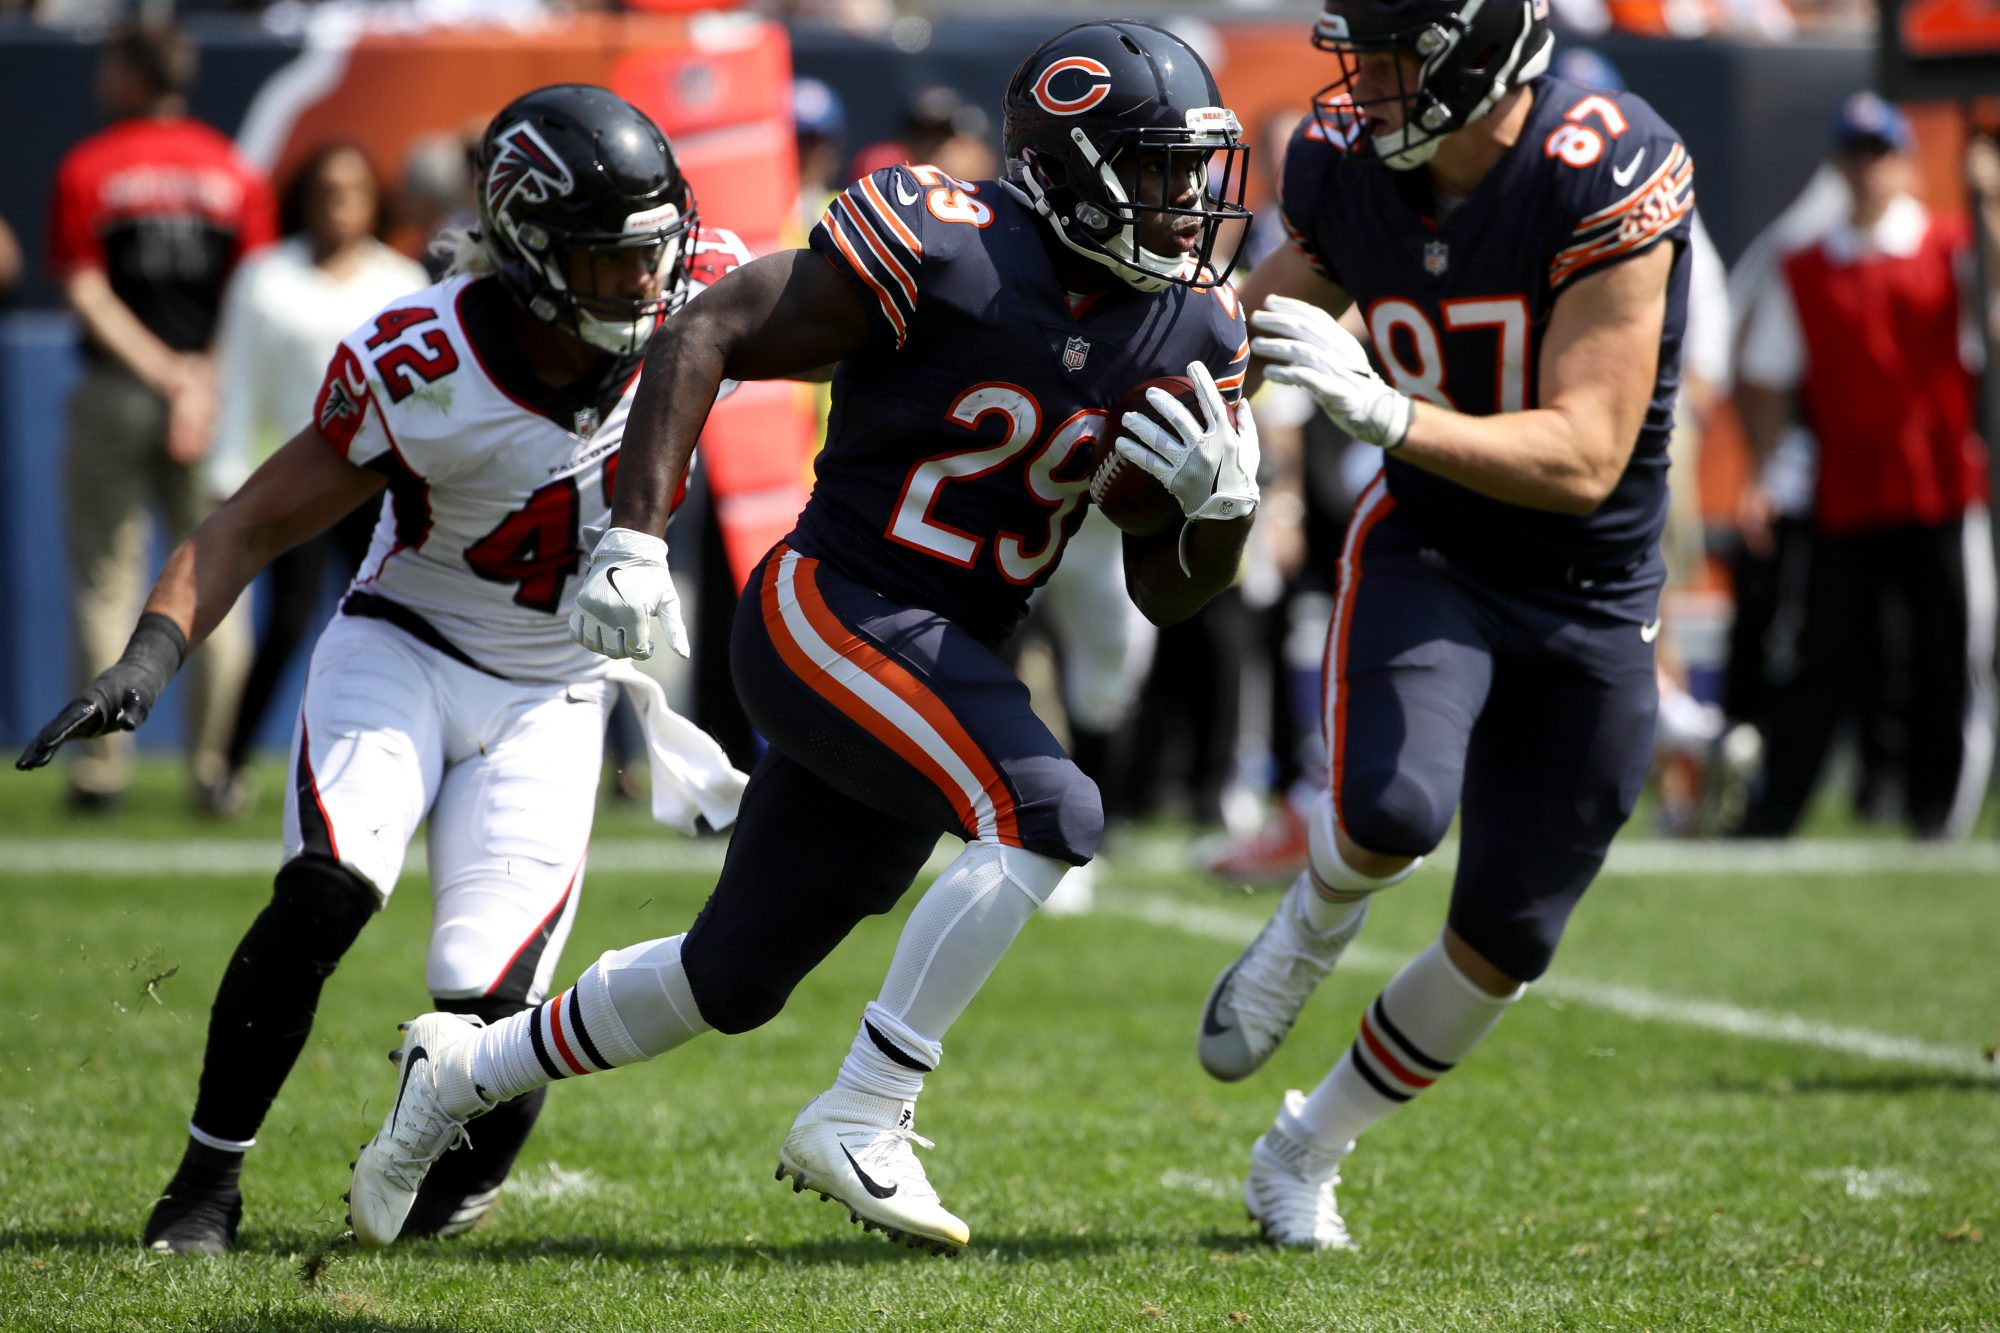 Fantasy Football: Waiver Wire Pickups After Week 1 4